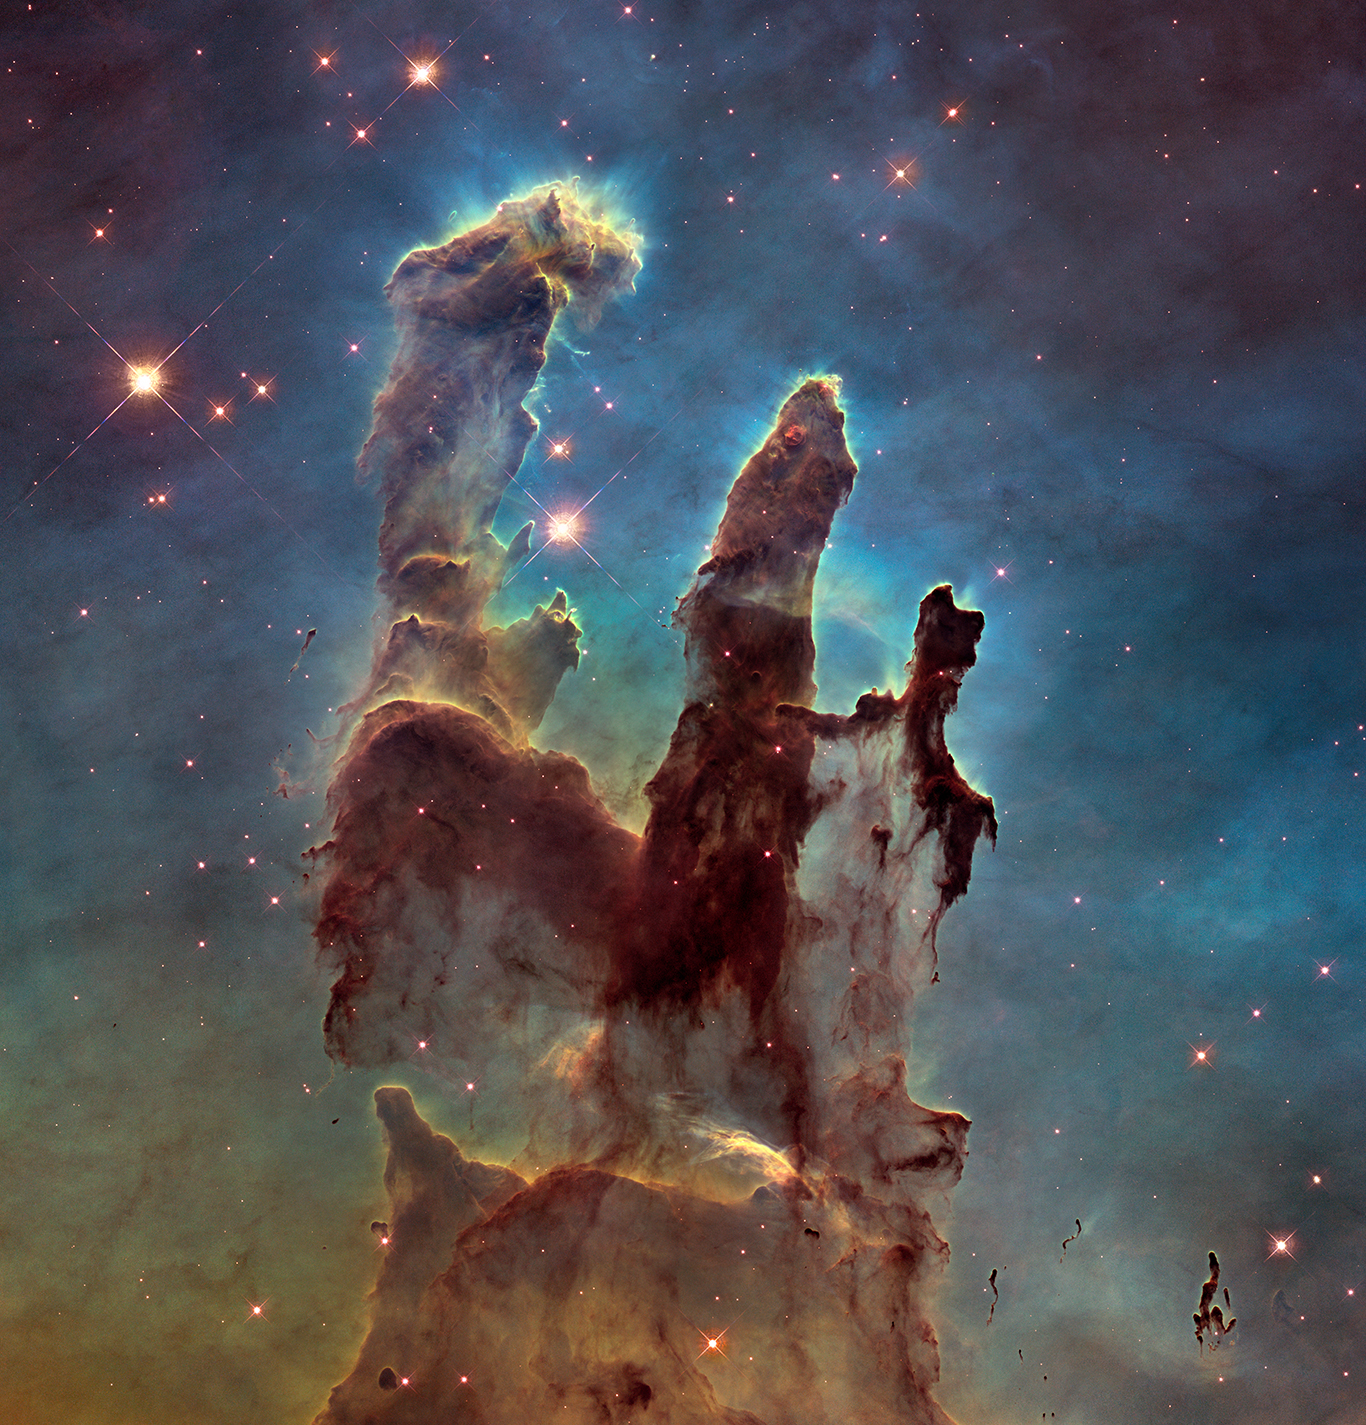 The Pillars of Creation - and the inspiration behind 'Celestial Citadel'